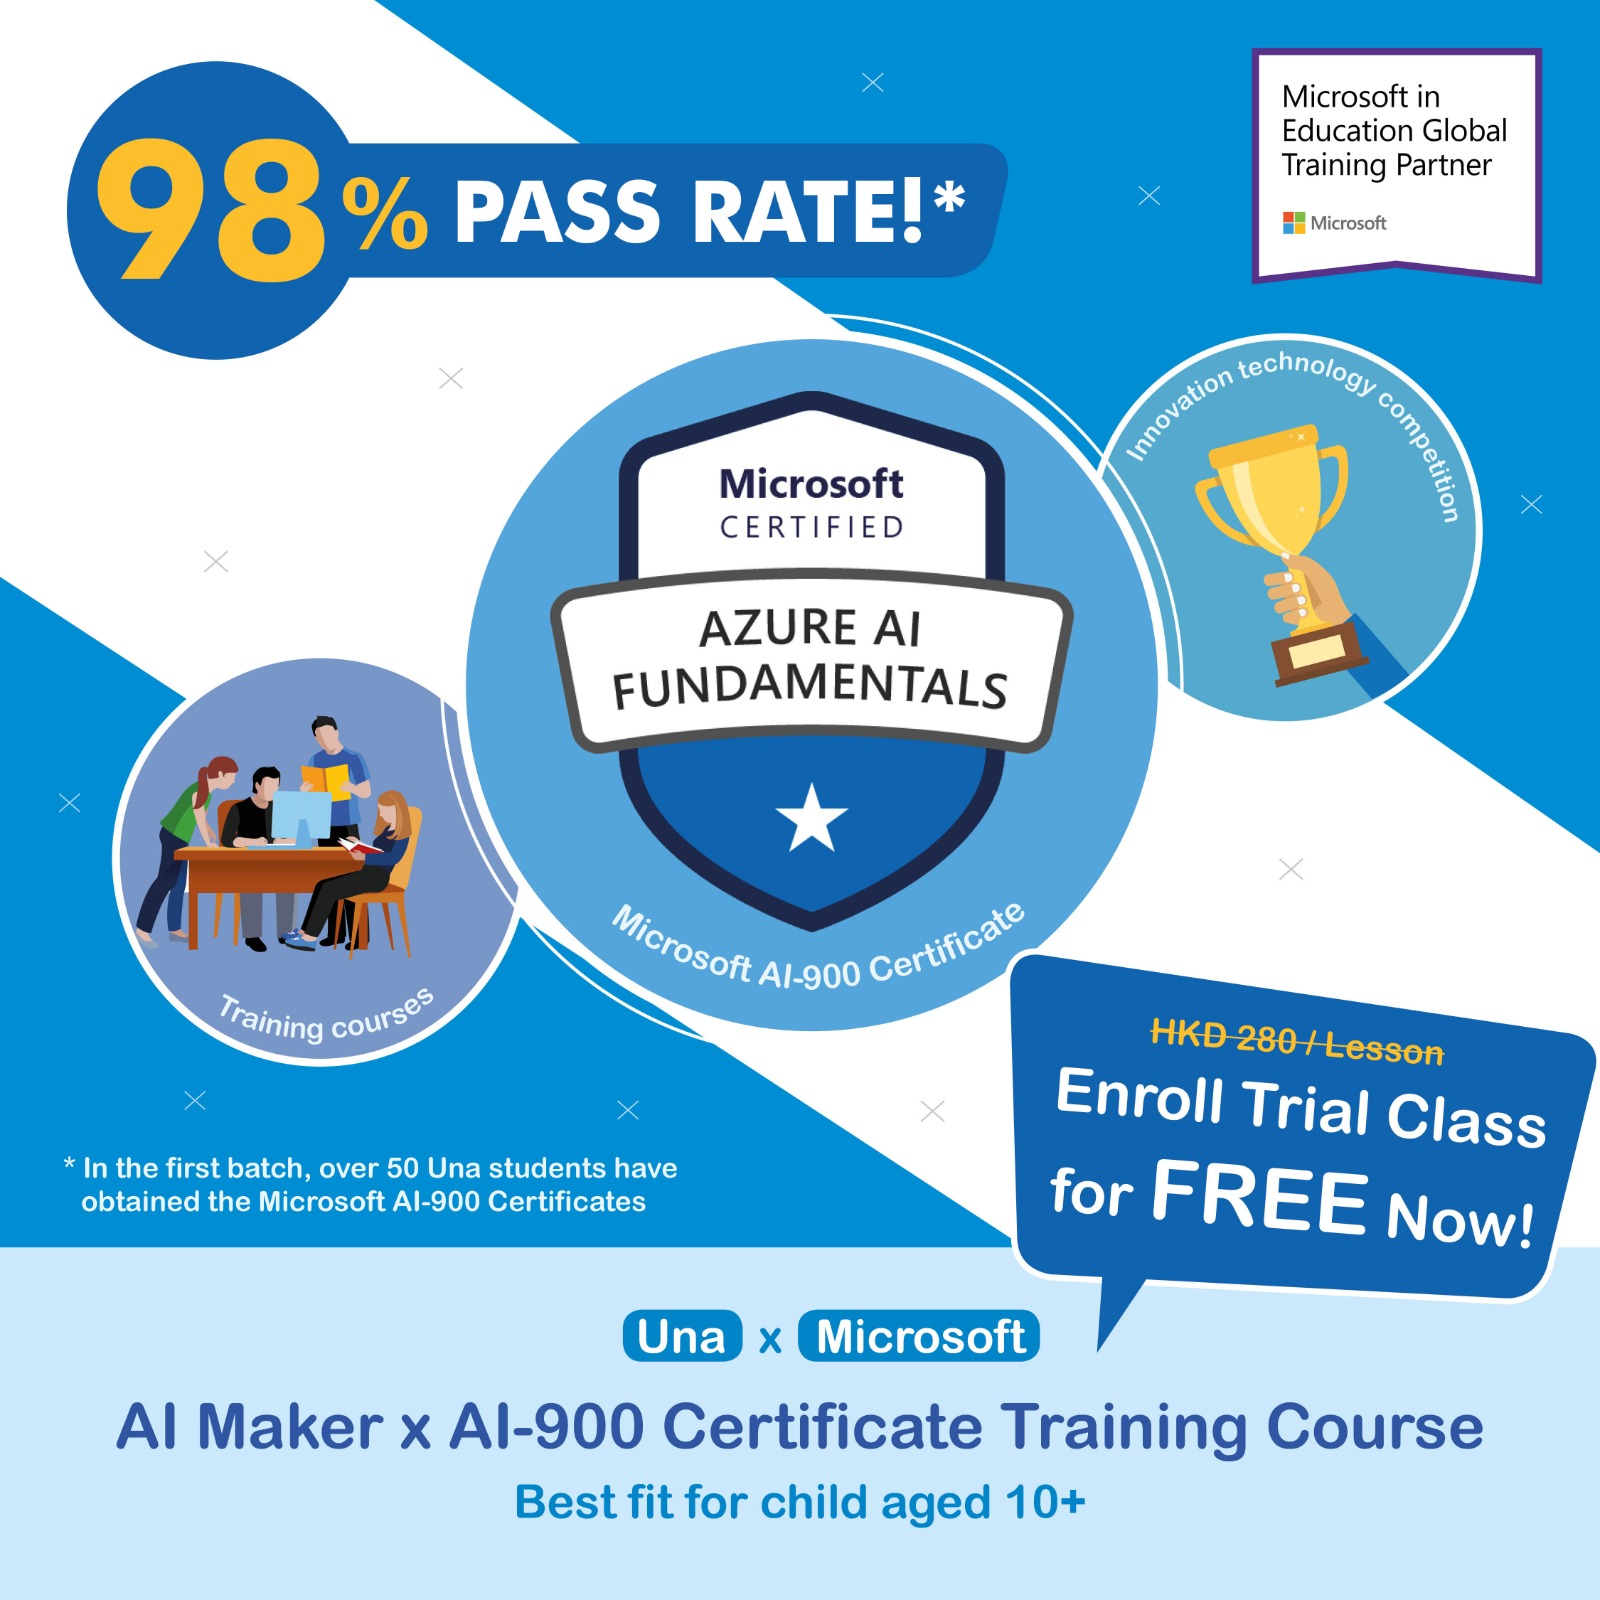 AI Maker x AI-900 Training Course